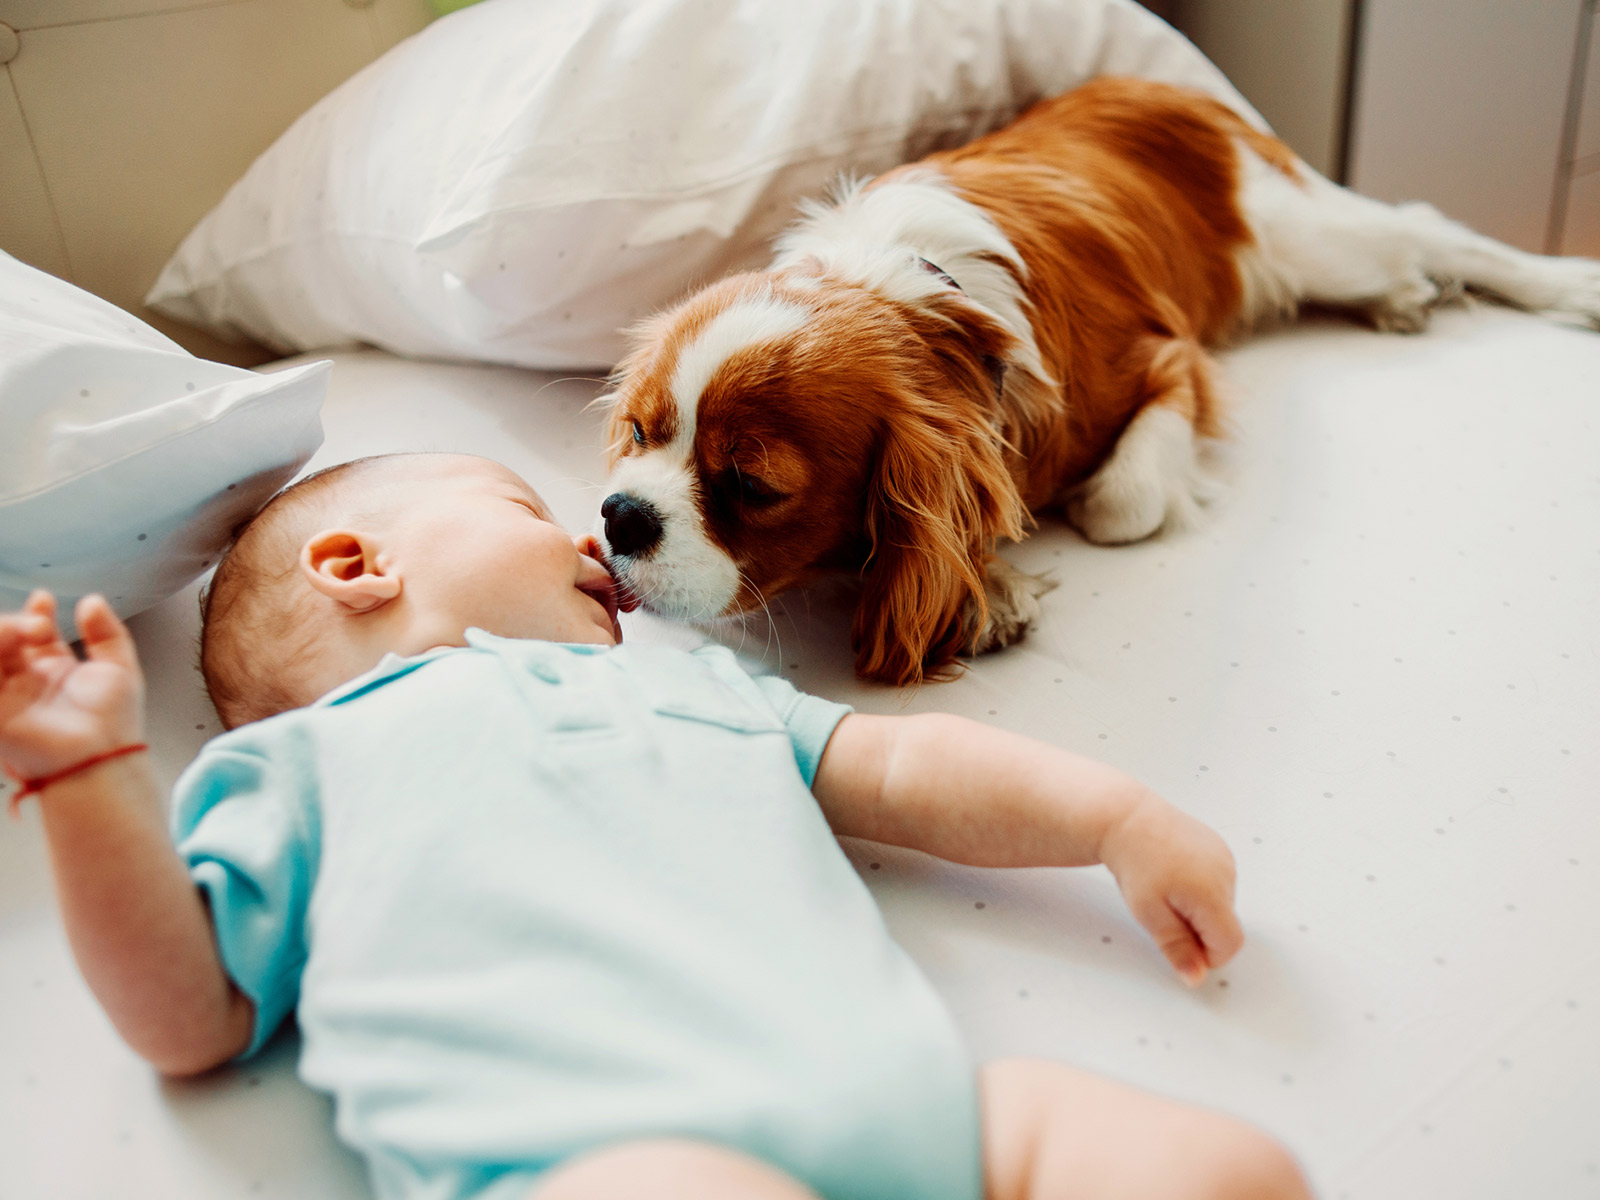 Baby laying on a bed with a small dog next to the baby licking the babies face